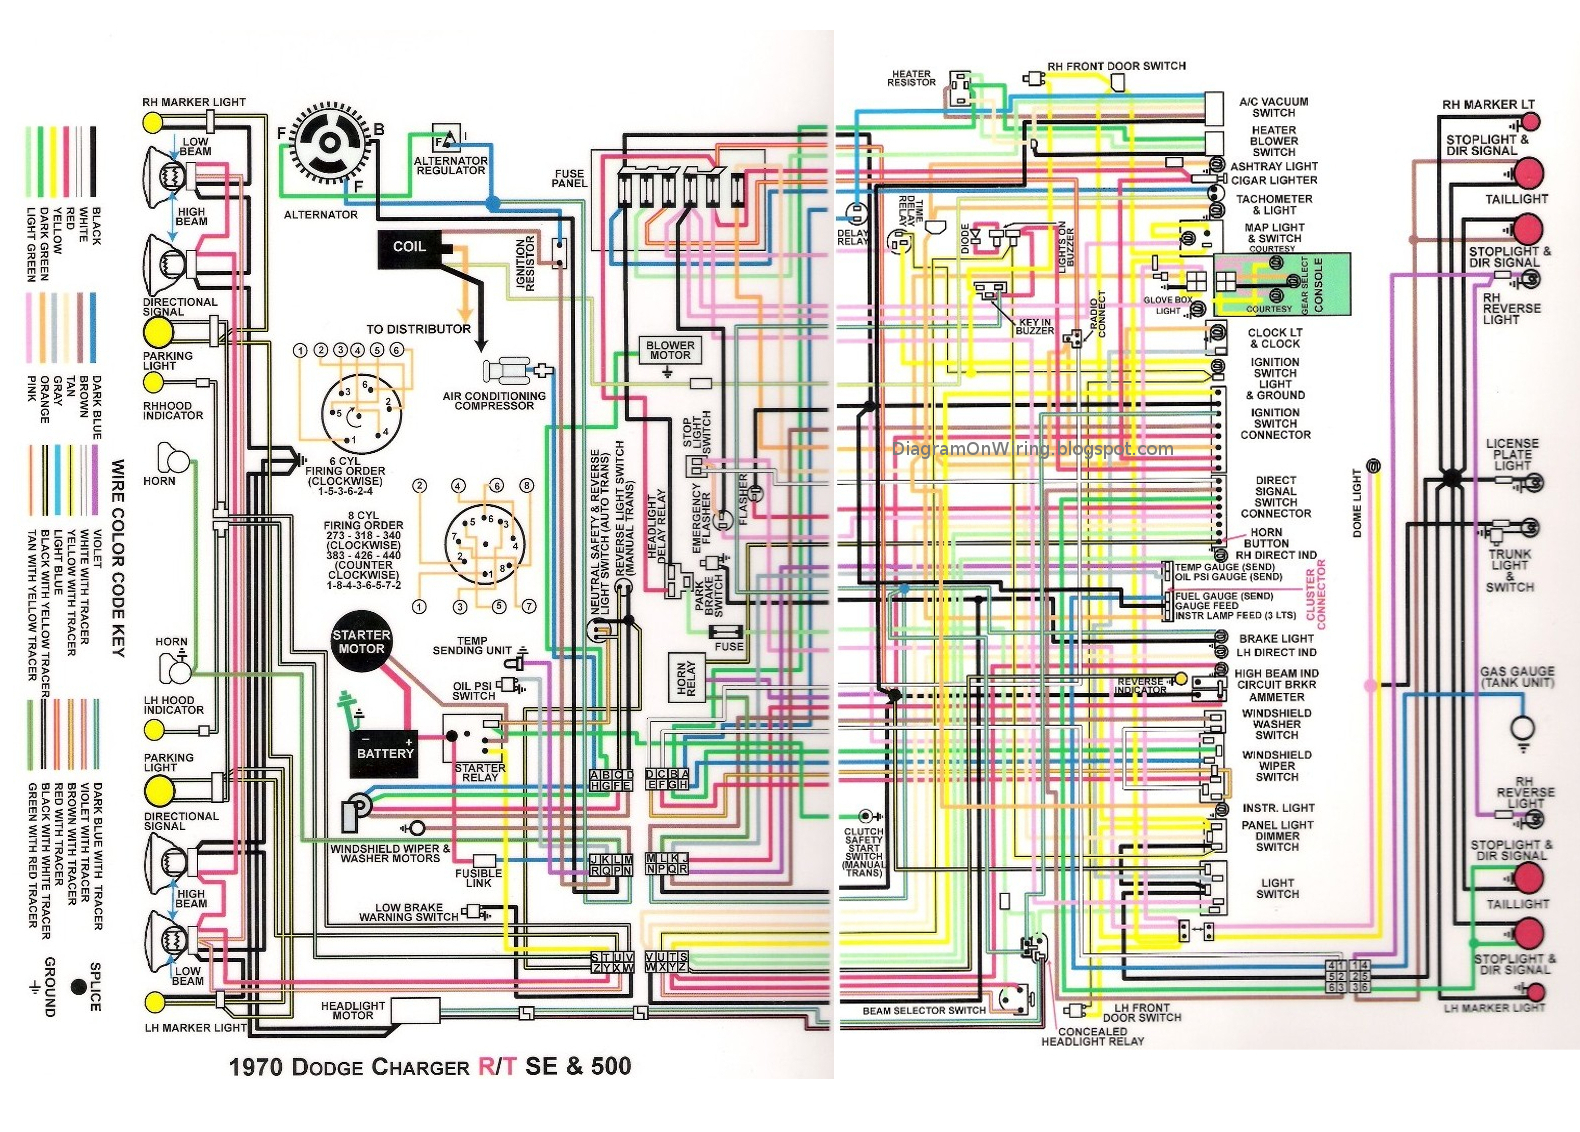 Complete+Wiring+Diagram+for+1970+Dodge+Charger+RT+SE+and+50 72 c10 wiring diagram 64 c10 wiring diagram \u2022 free wiring diagrams  at mifinder.co